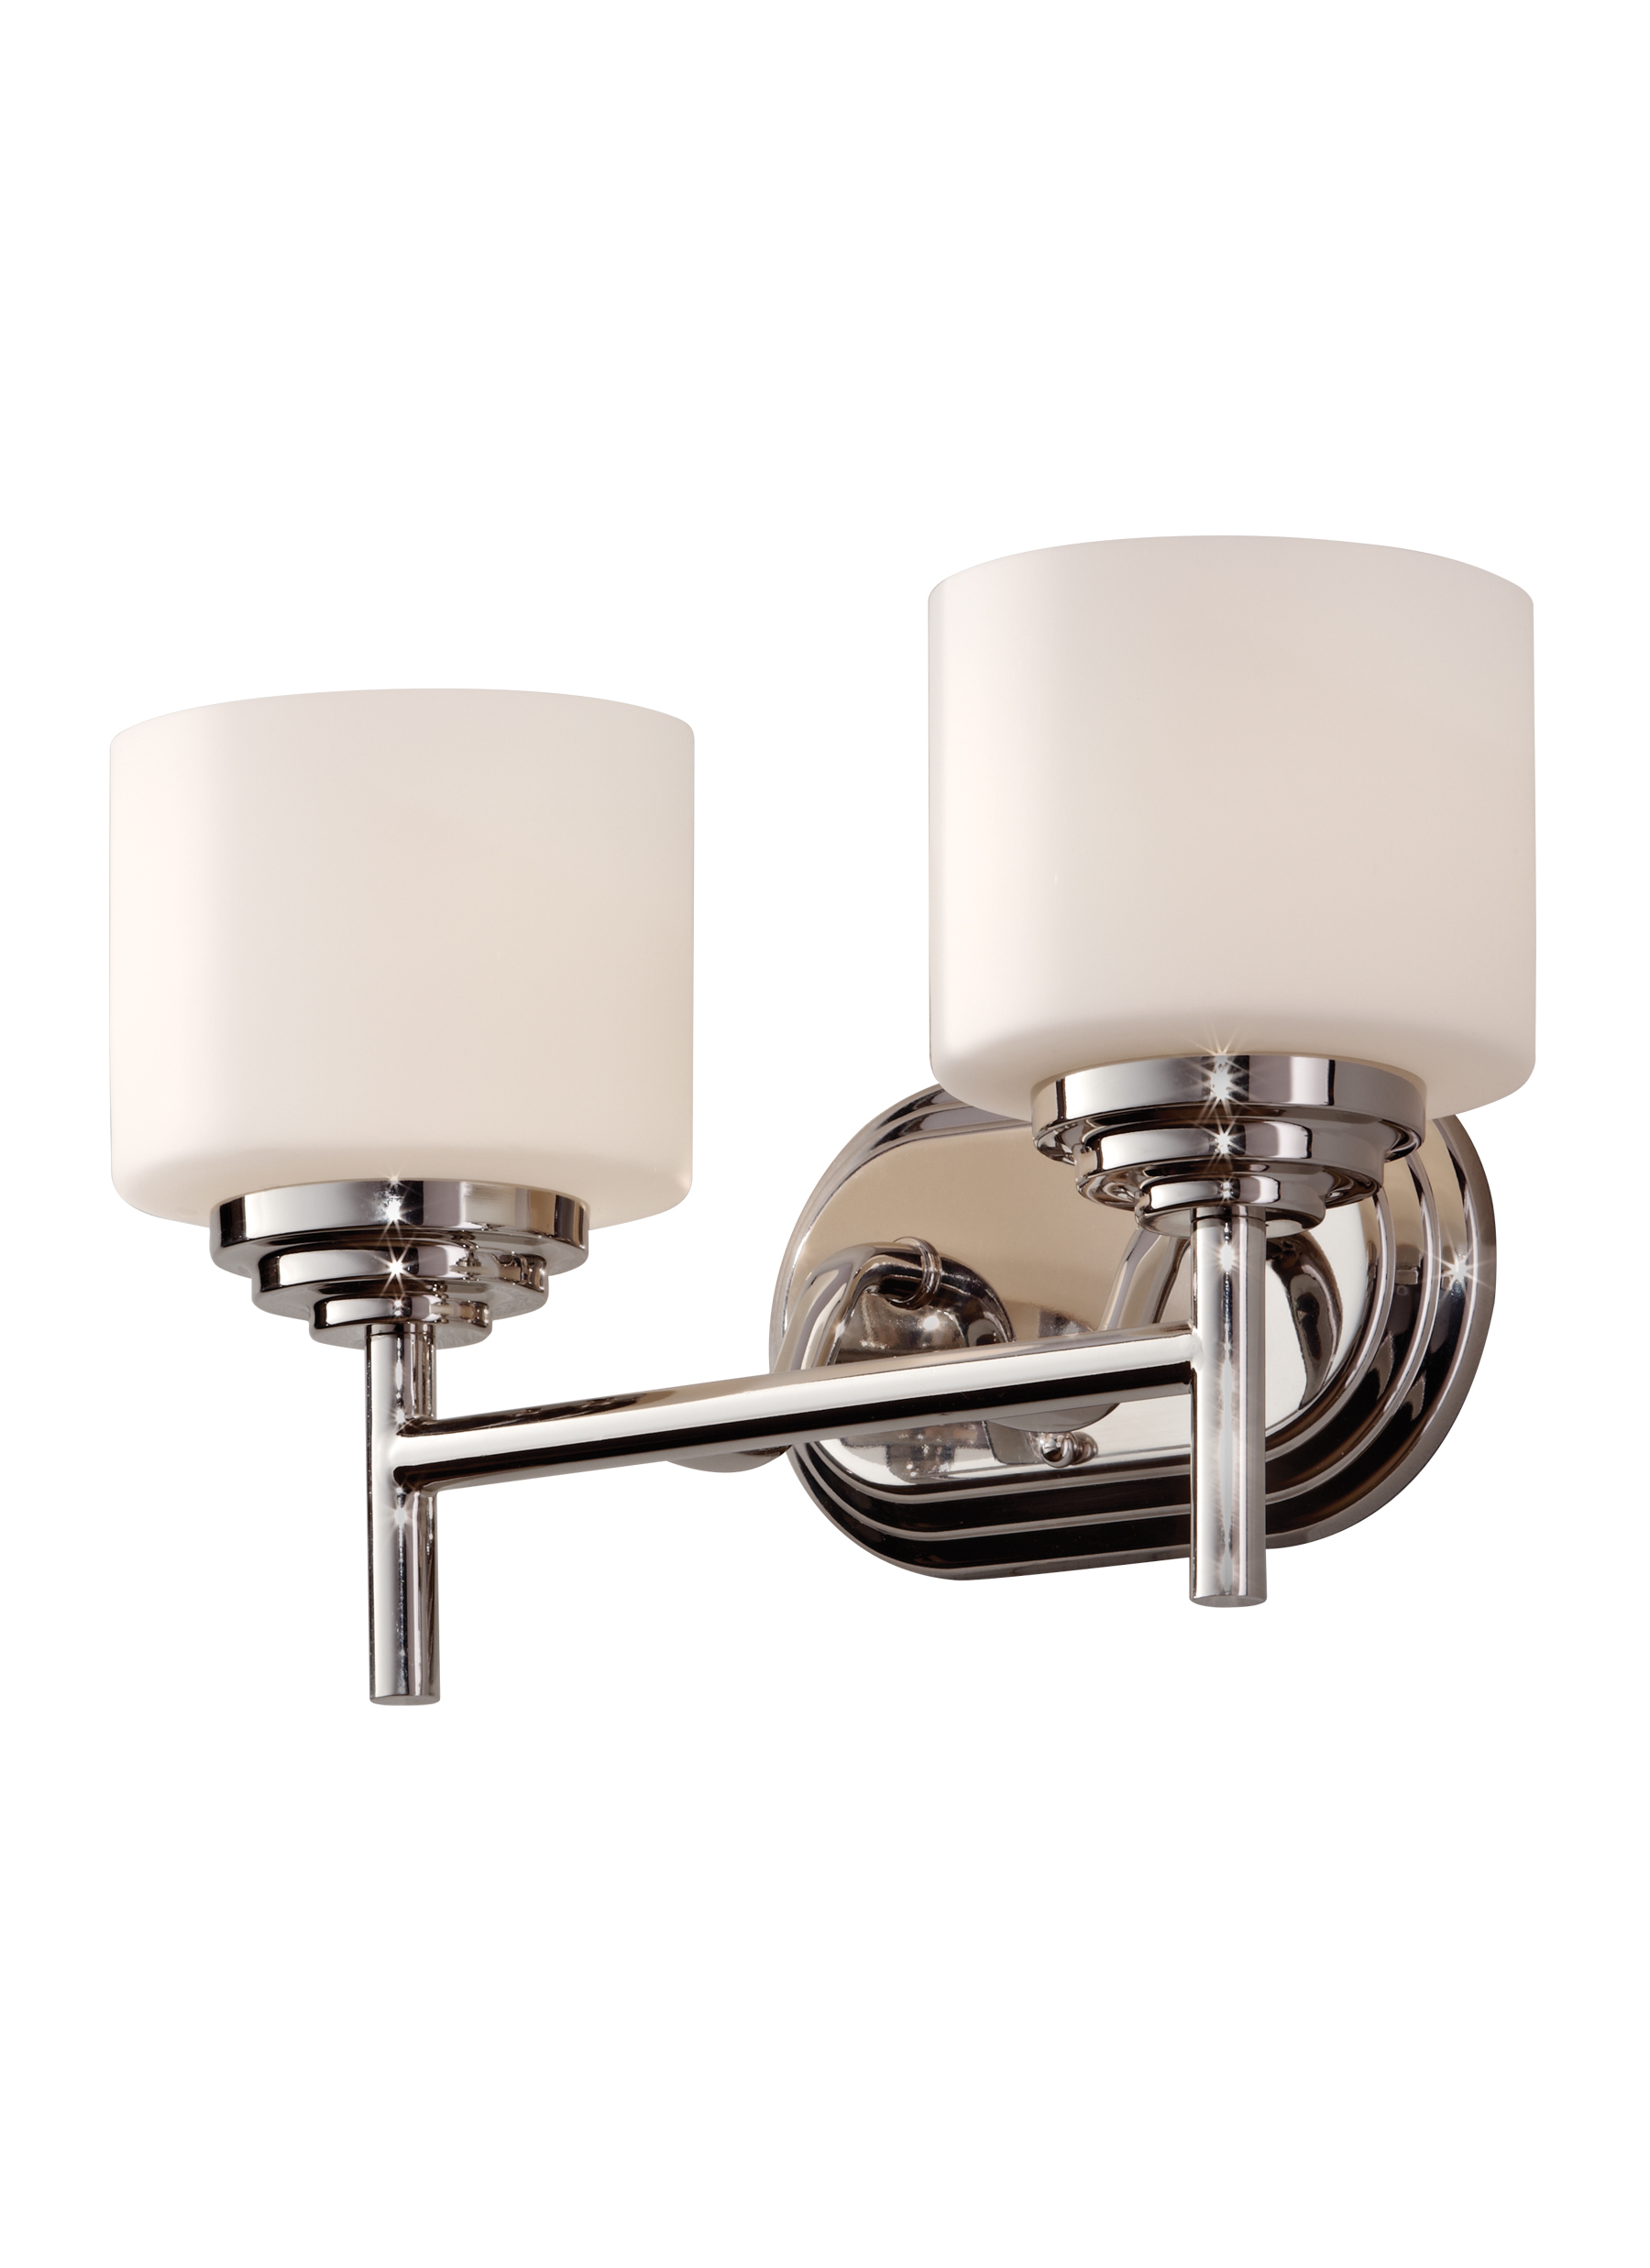 Bathroom Lighting Fixtures Polished Nickel vs26002-pn,2 - light vanity fixture ,polished nickel